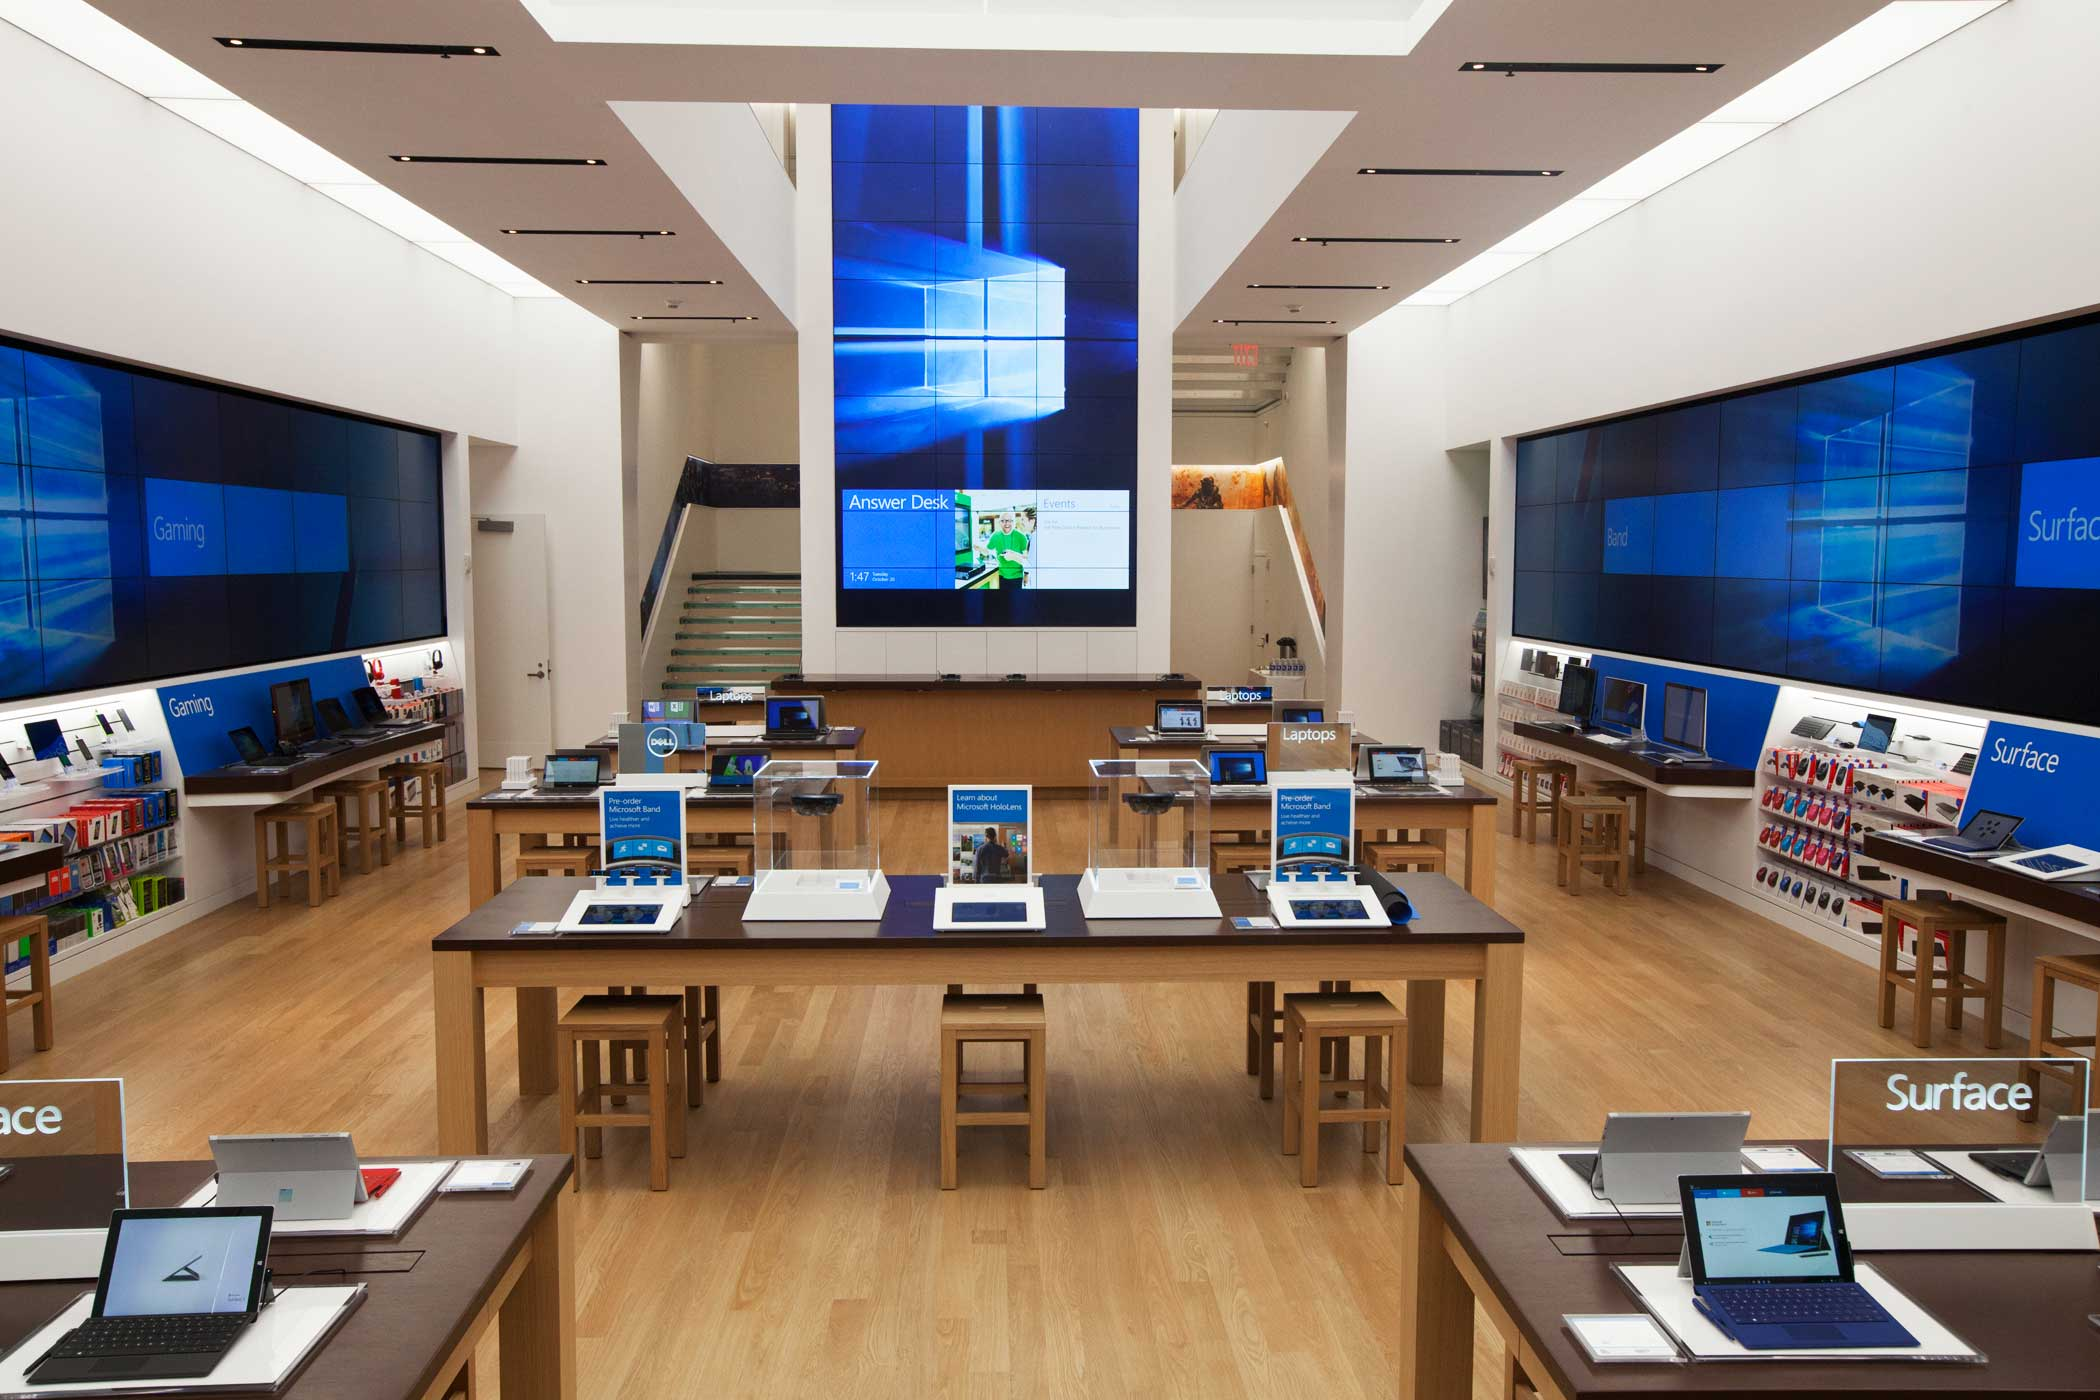 <b>Microsoft Store</b> Microsoft's new flagship store opening on Oct. 26, 2015 in New York.